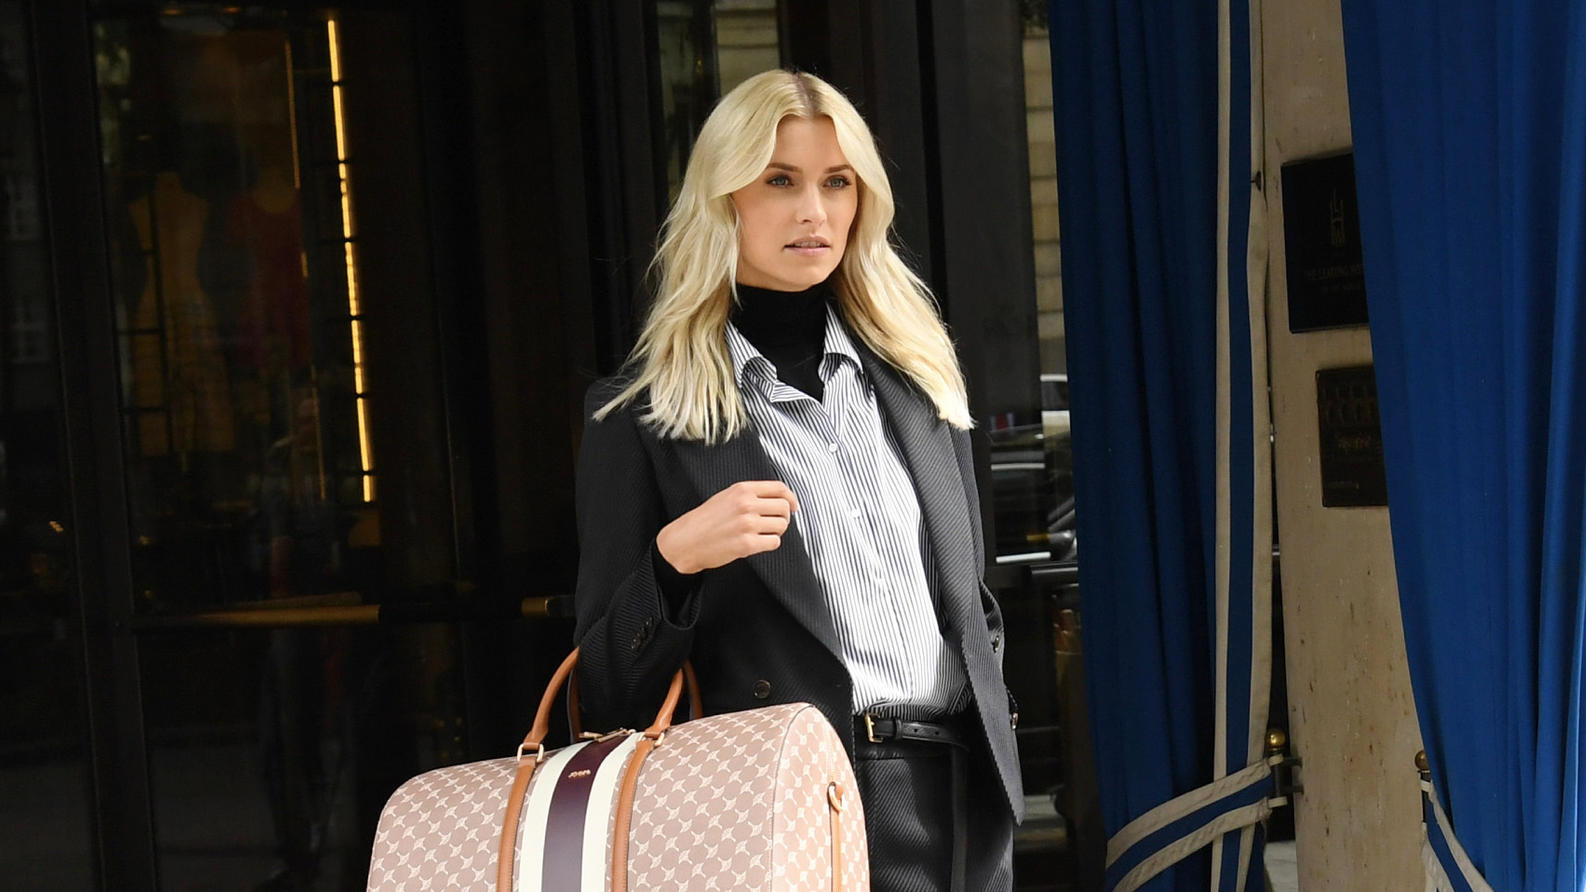 Lena Gercke photo shooting for Joop in front of Bayerischer Hof in Munich**No web and no daily newspapers until 11.09.2018**Featuring: Lena GerckeWhere: Munich, GermanyWhen: 17 May 2018Credit: Starpress fuer Joop / WENN**No web and no daily newspaper